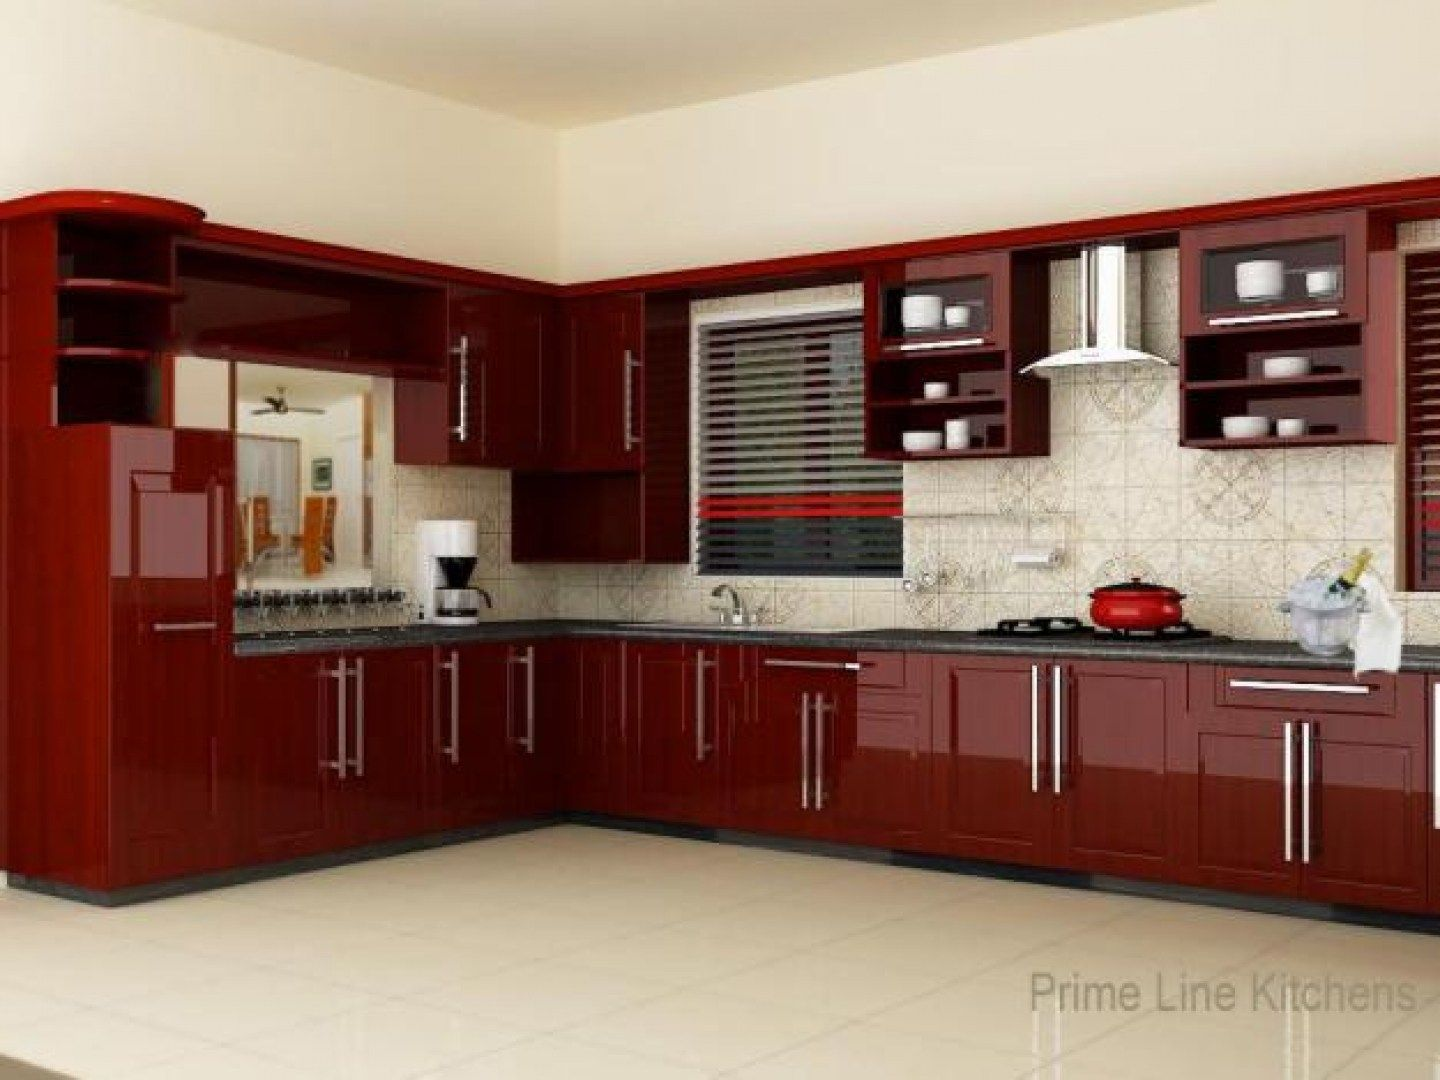 Kitchen design ideas kitchen woodwork designs hyderabad download king platform bed designs Home life furniture bangalore